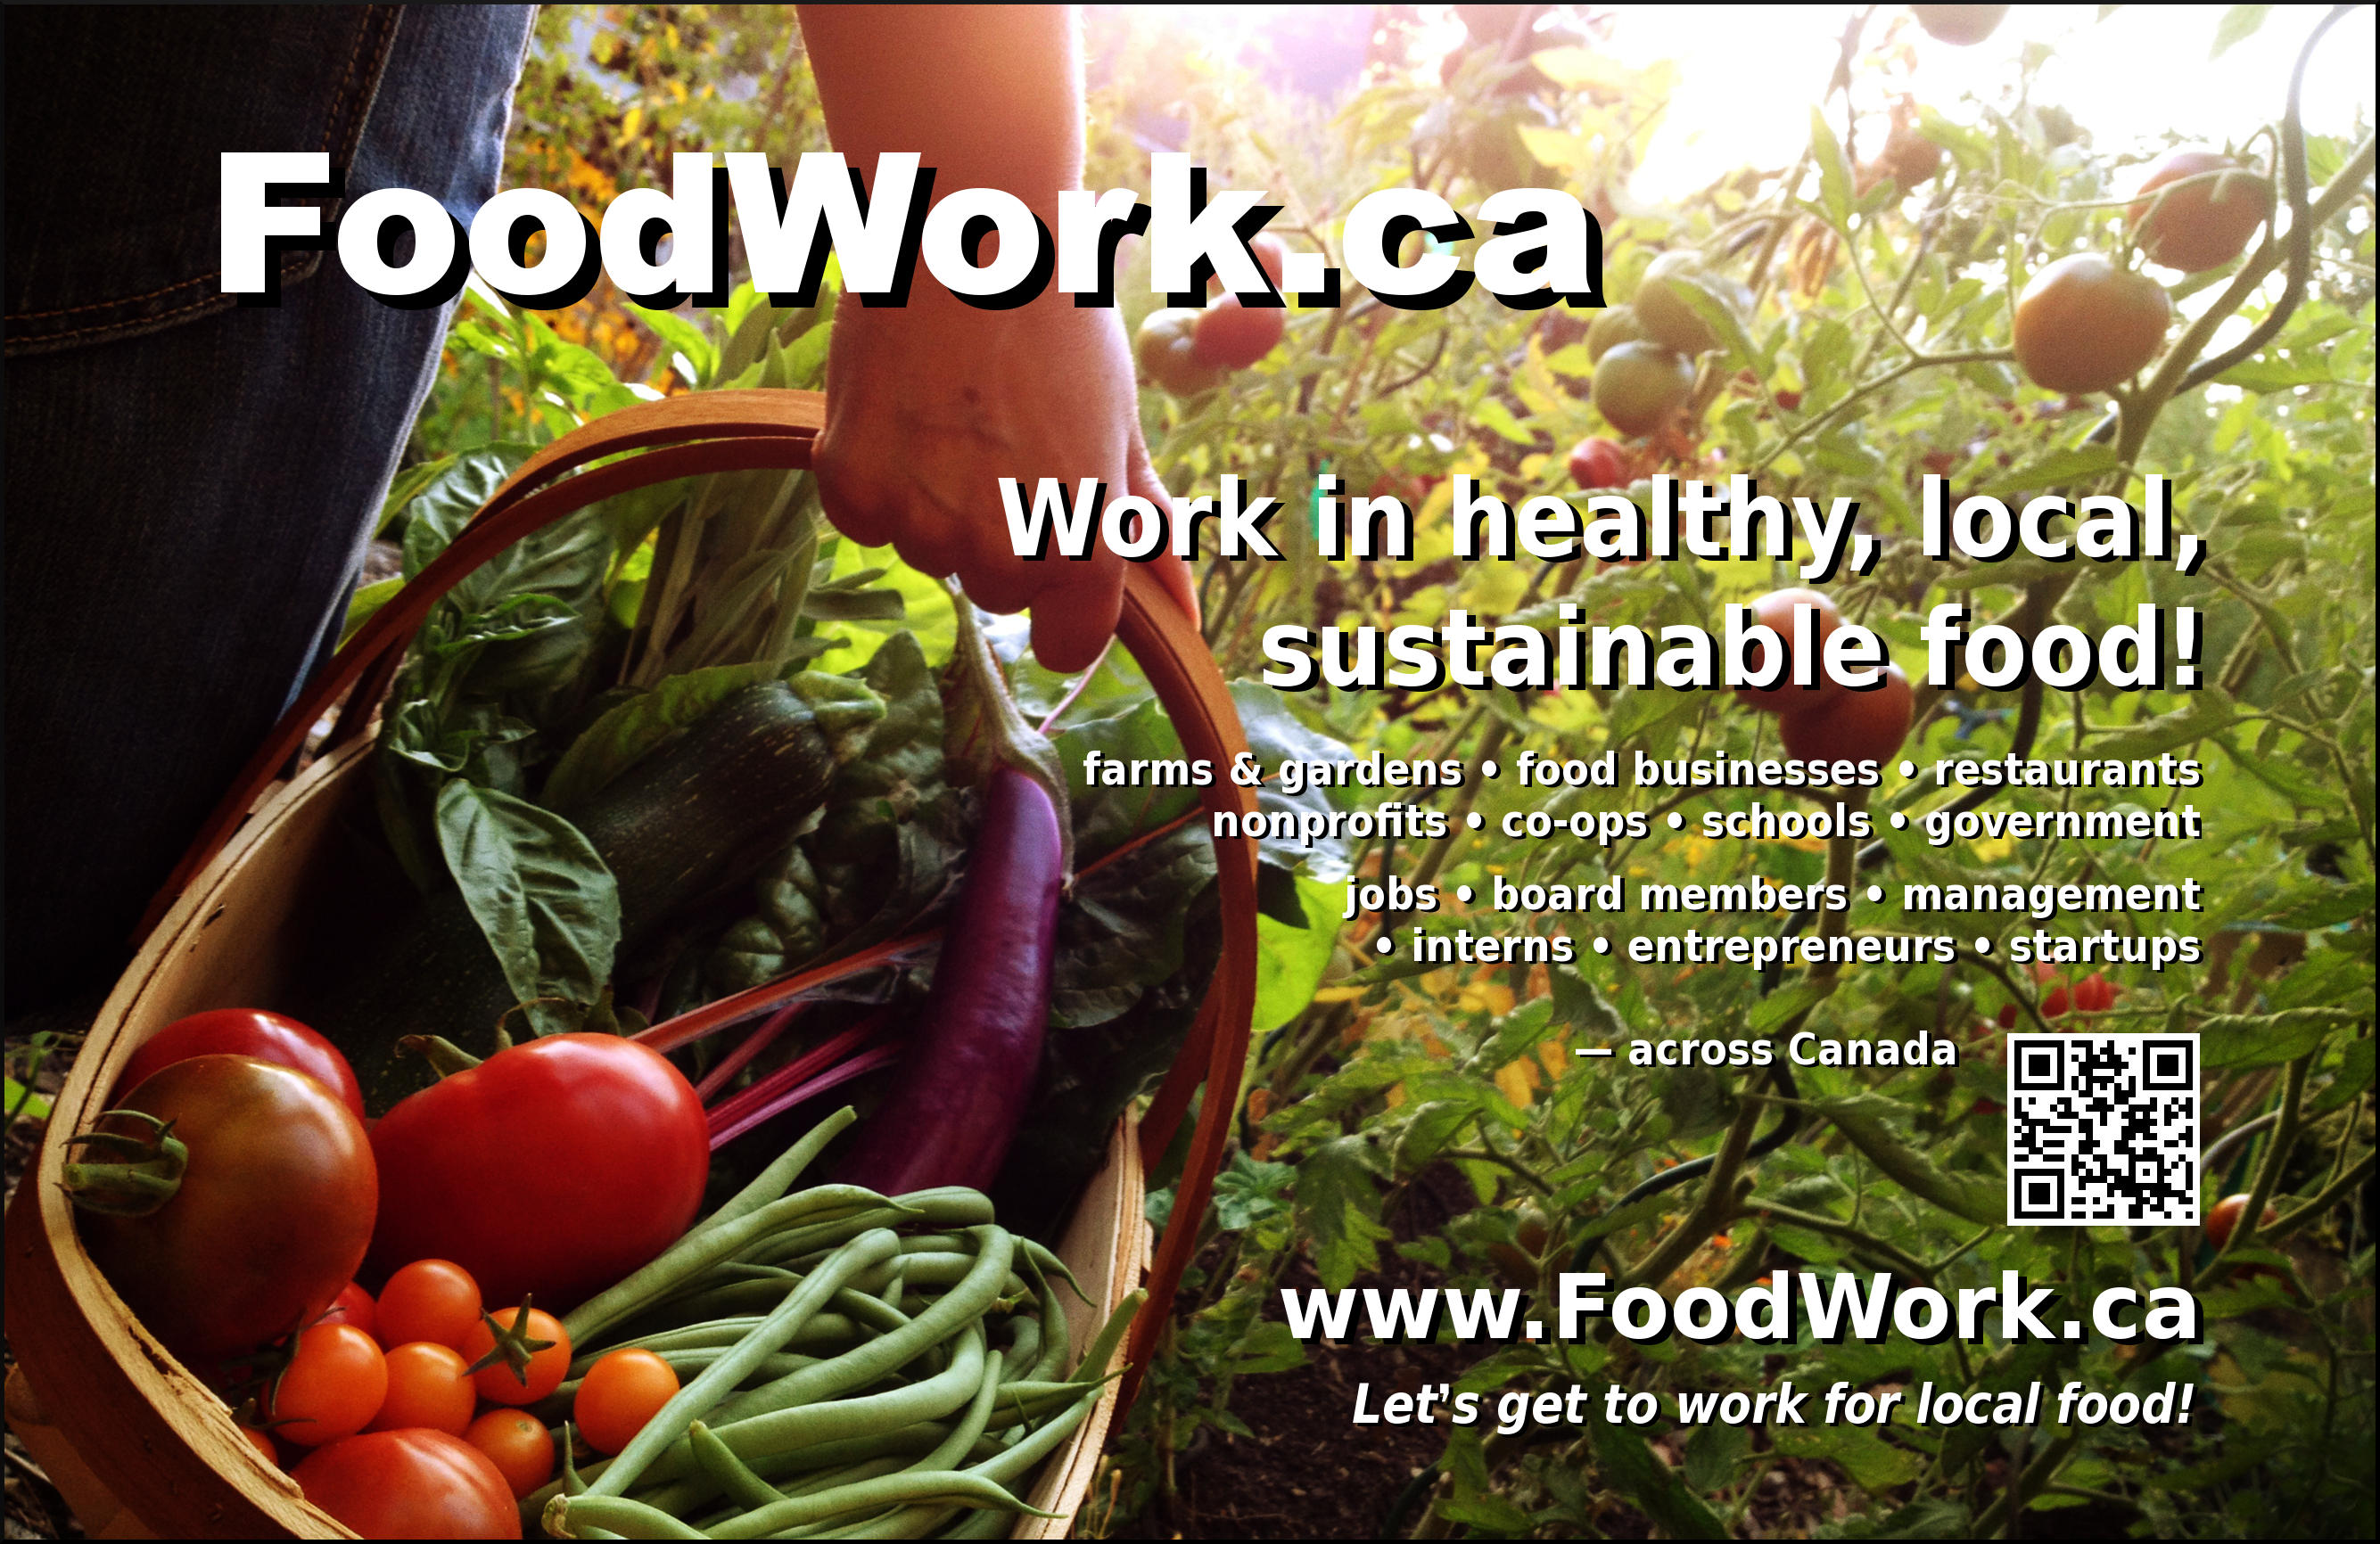 Local and organic food jobs: FoodWork.ca